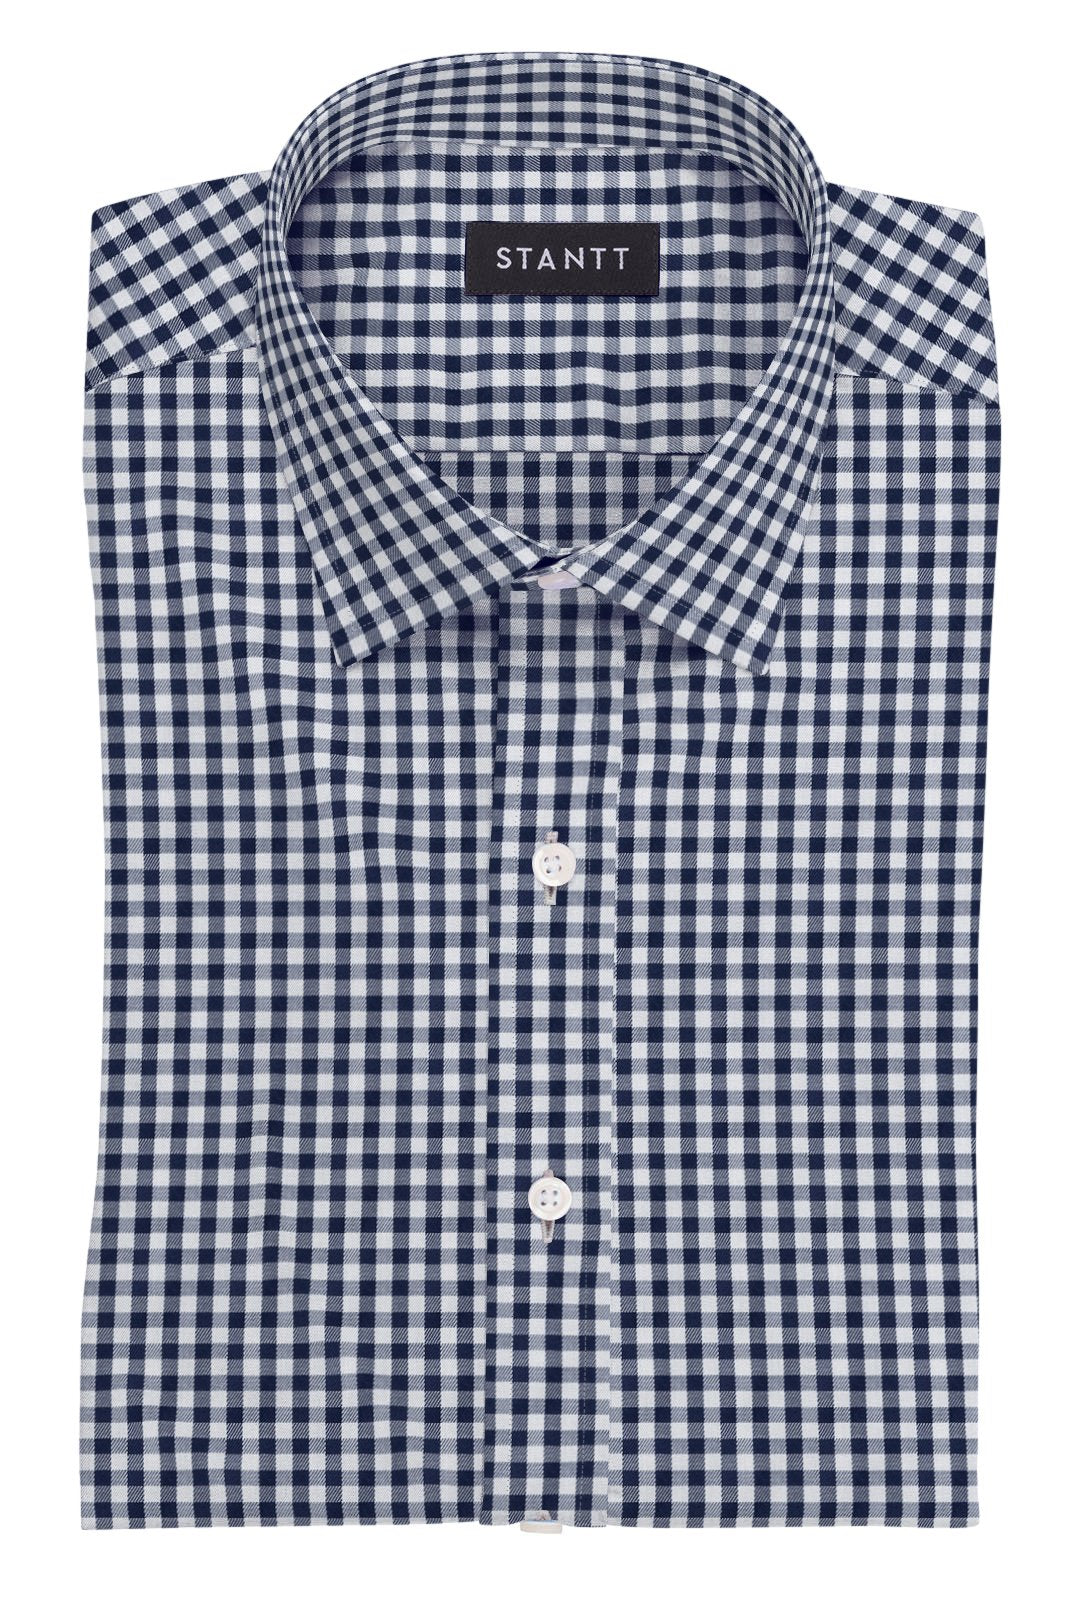 Navy Gingham: Modified Collar, Barrel Cuff